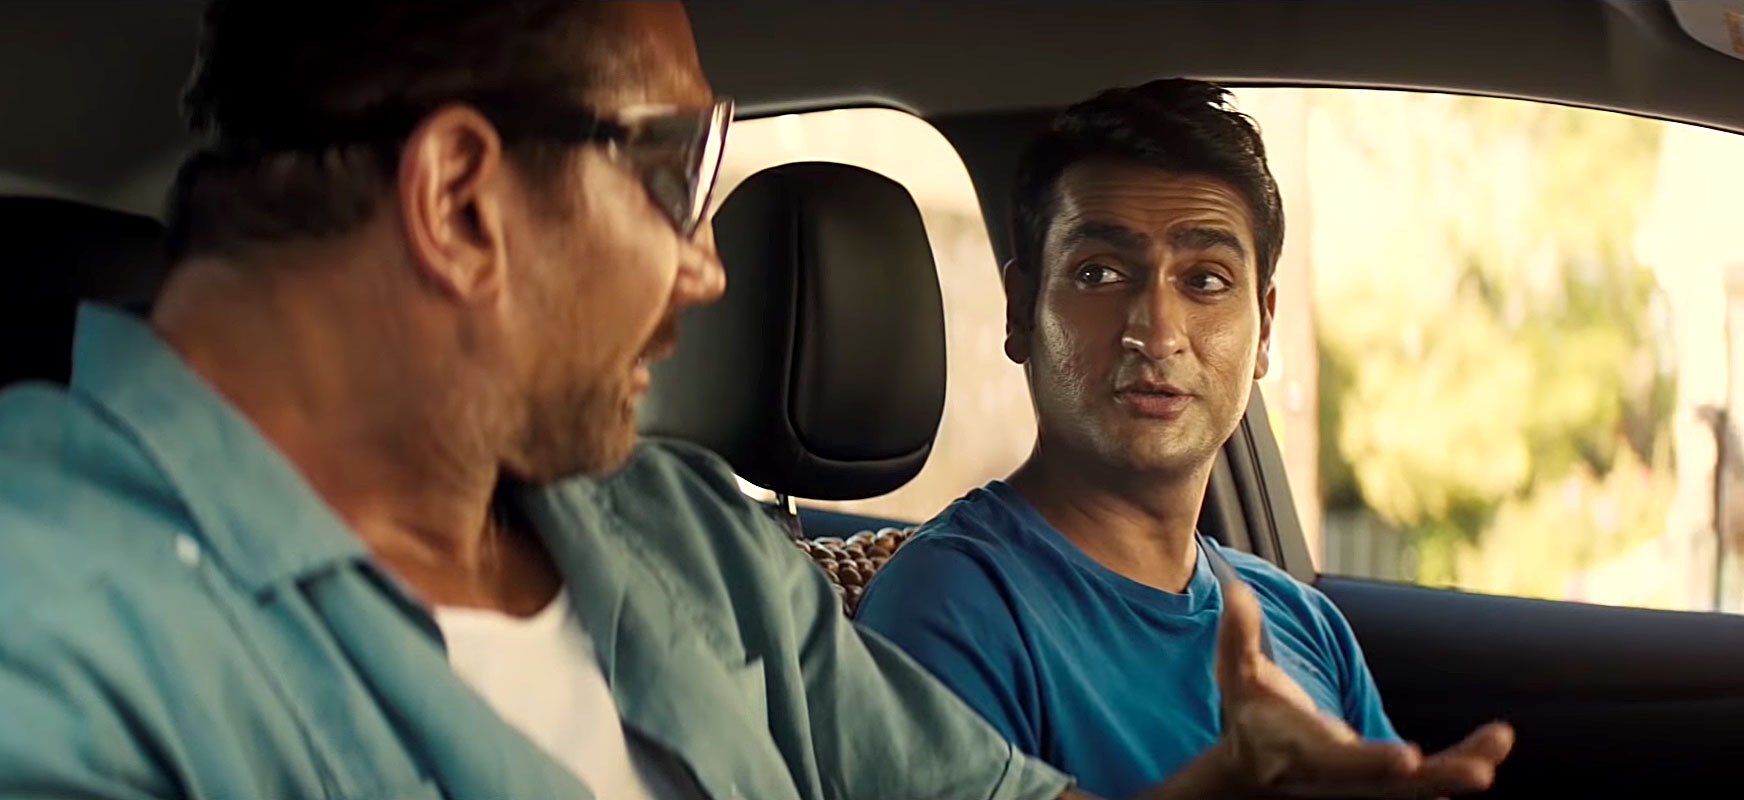 """Can't Miss Summer Movie Preview - """"I found myself laughing aloud when I read the script,"""" says Dave Bautista , who plays detective Vic in the comedy. Kumail Nanjiani (Uber driver Stu) tells Us there was a ton of improv on set, which didn't always work: """"We ruined a lot of takes by laughing!"""" (July 12)"""